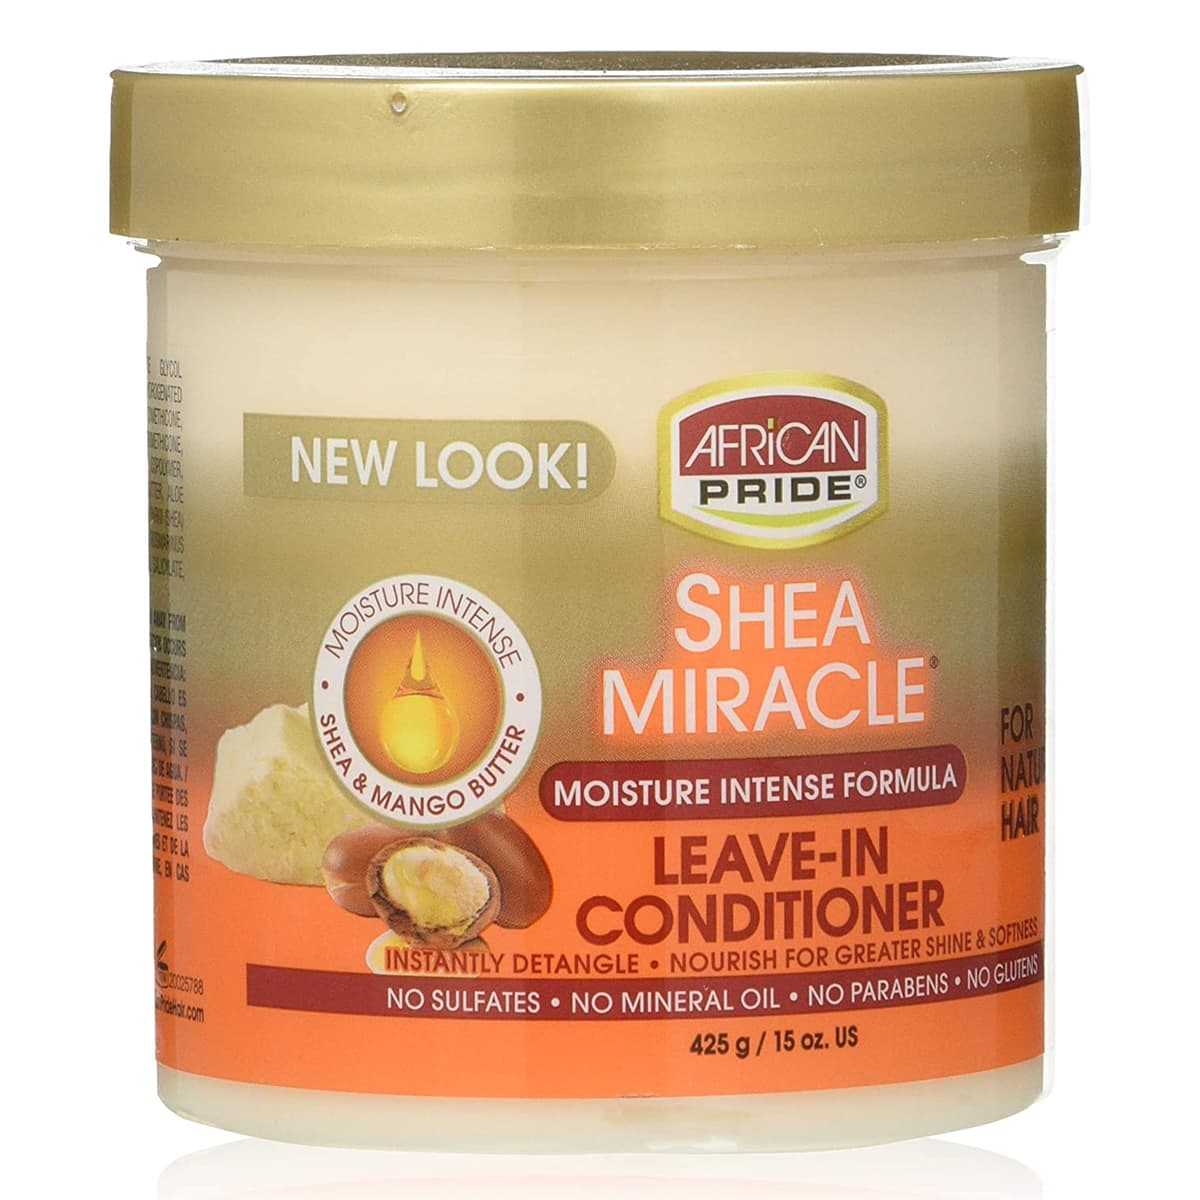 Buy African Pride Shea Butter Miracle Leave-in Conditioner - 425 gm